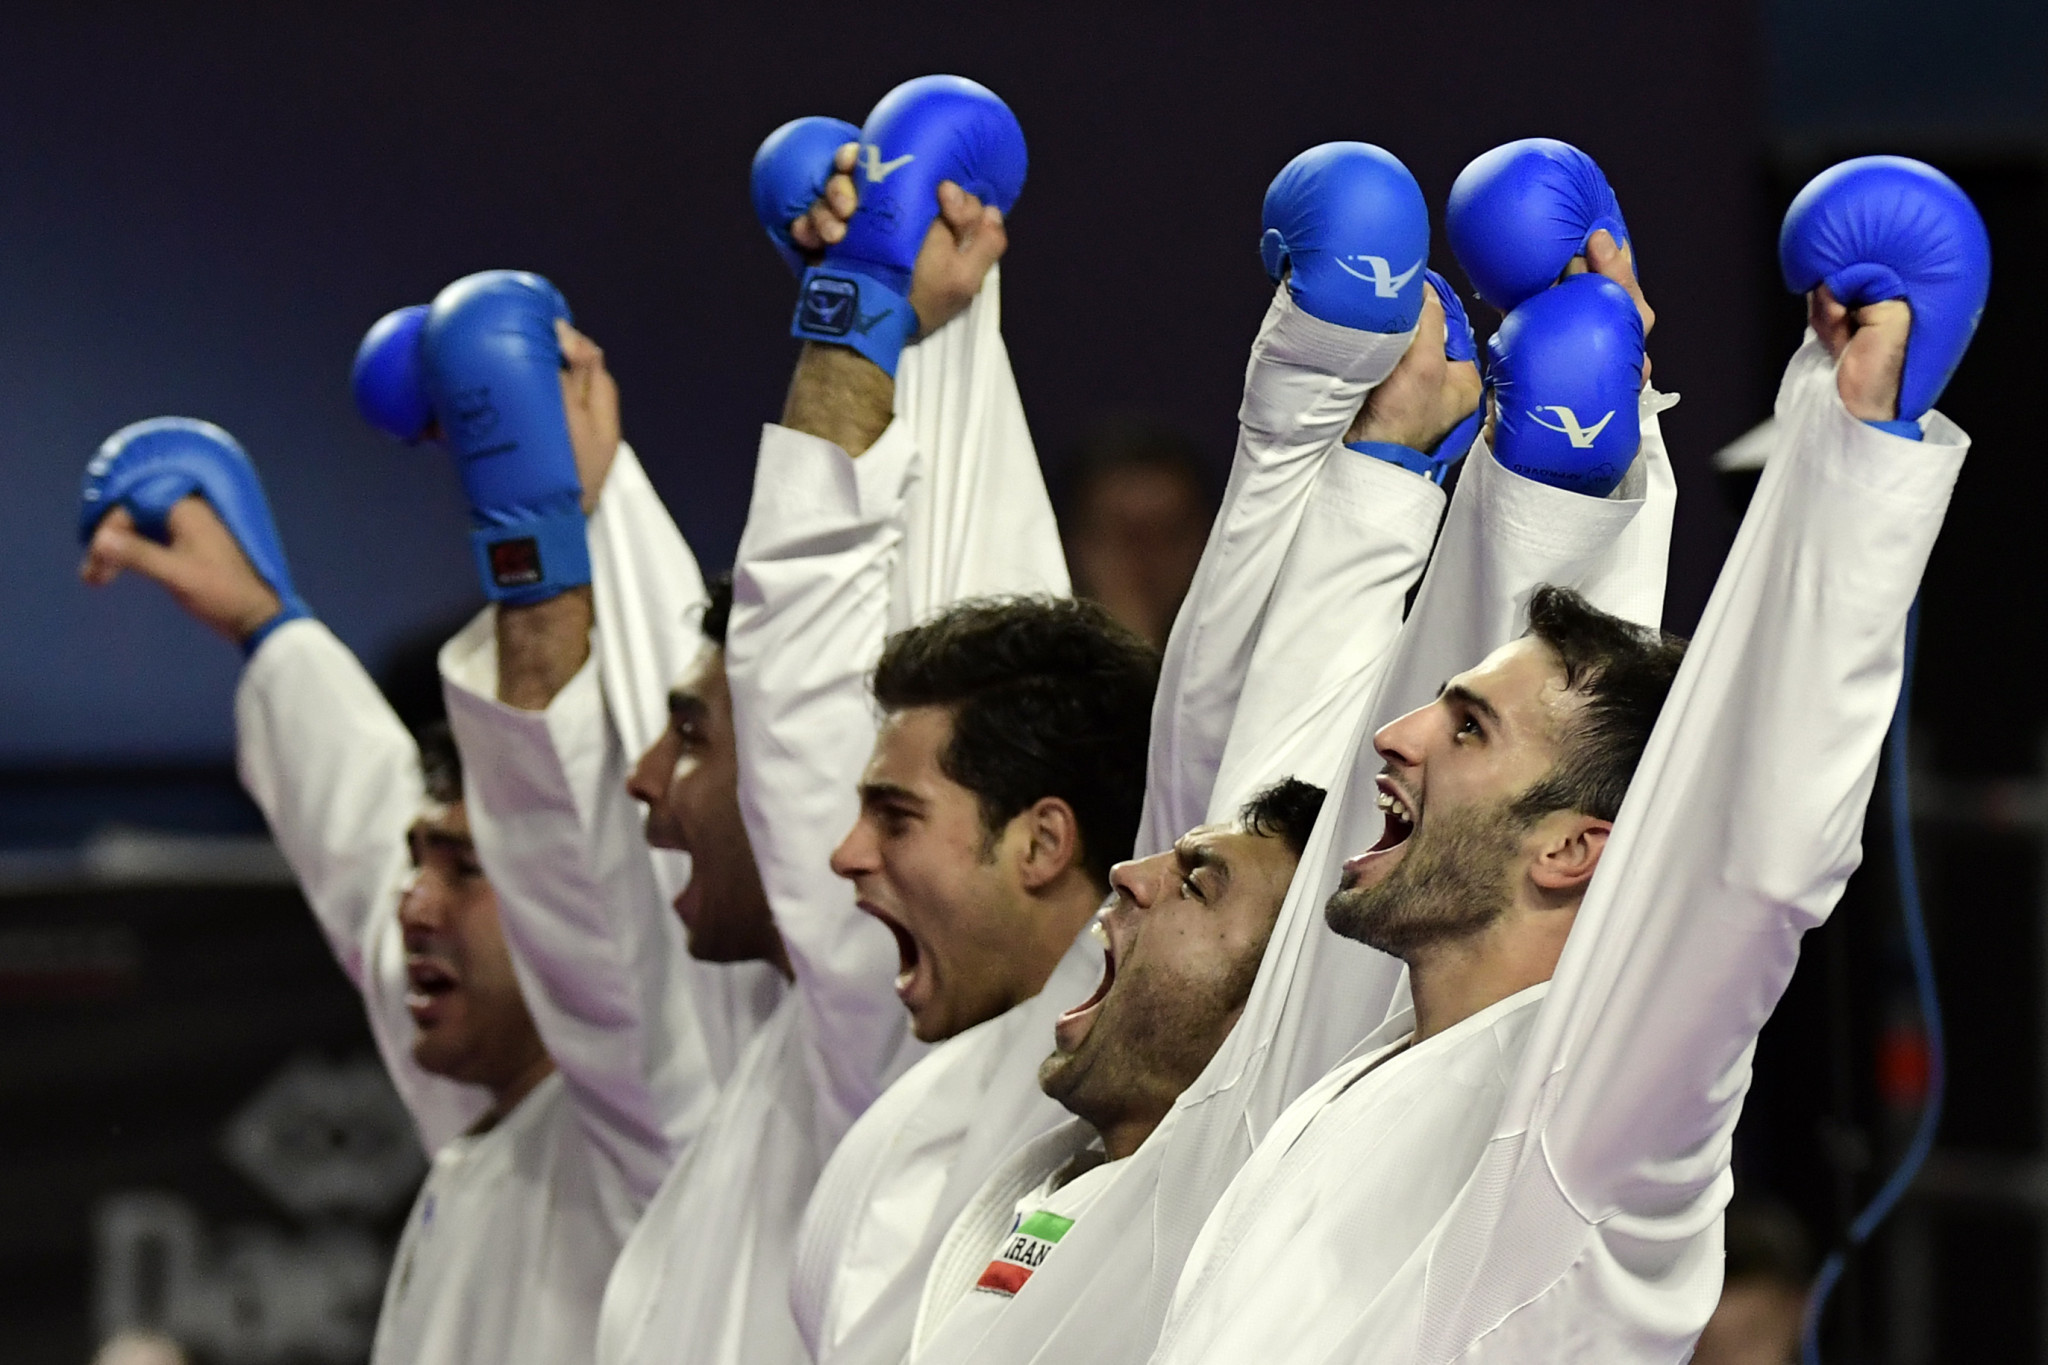 Iran fought back to beat Turkey in the men's team kumite final ©Getty Images